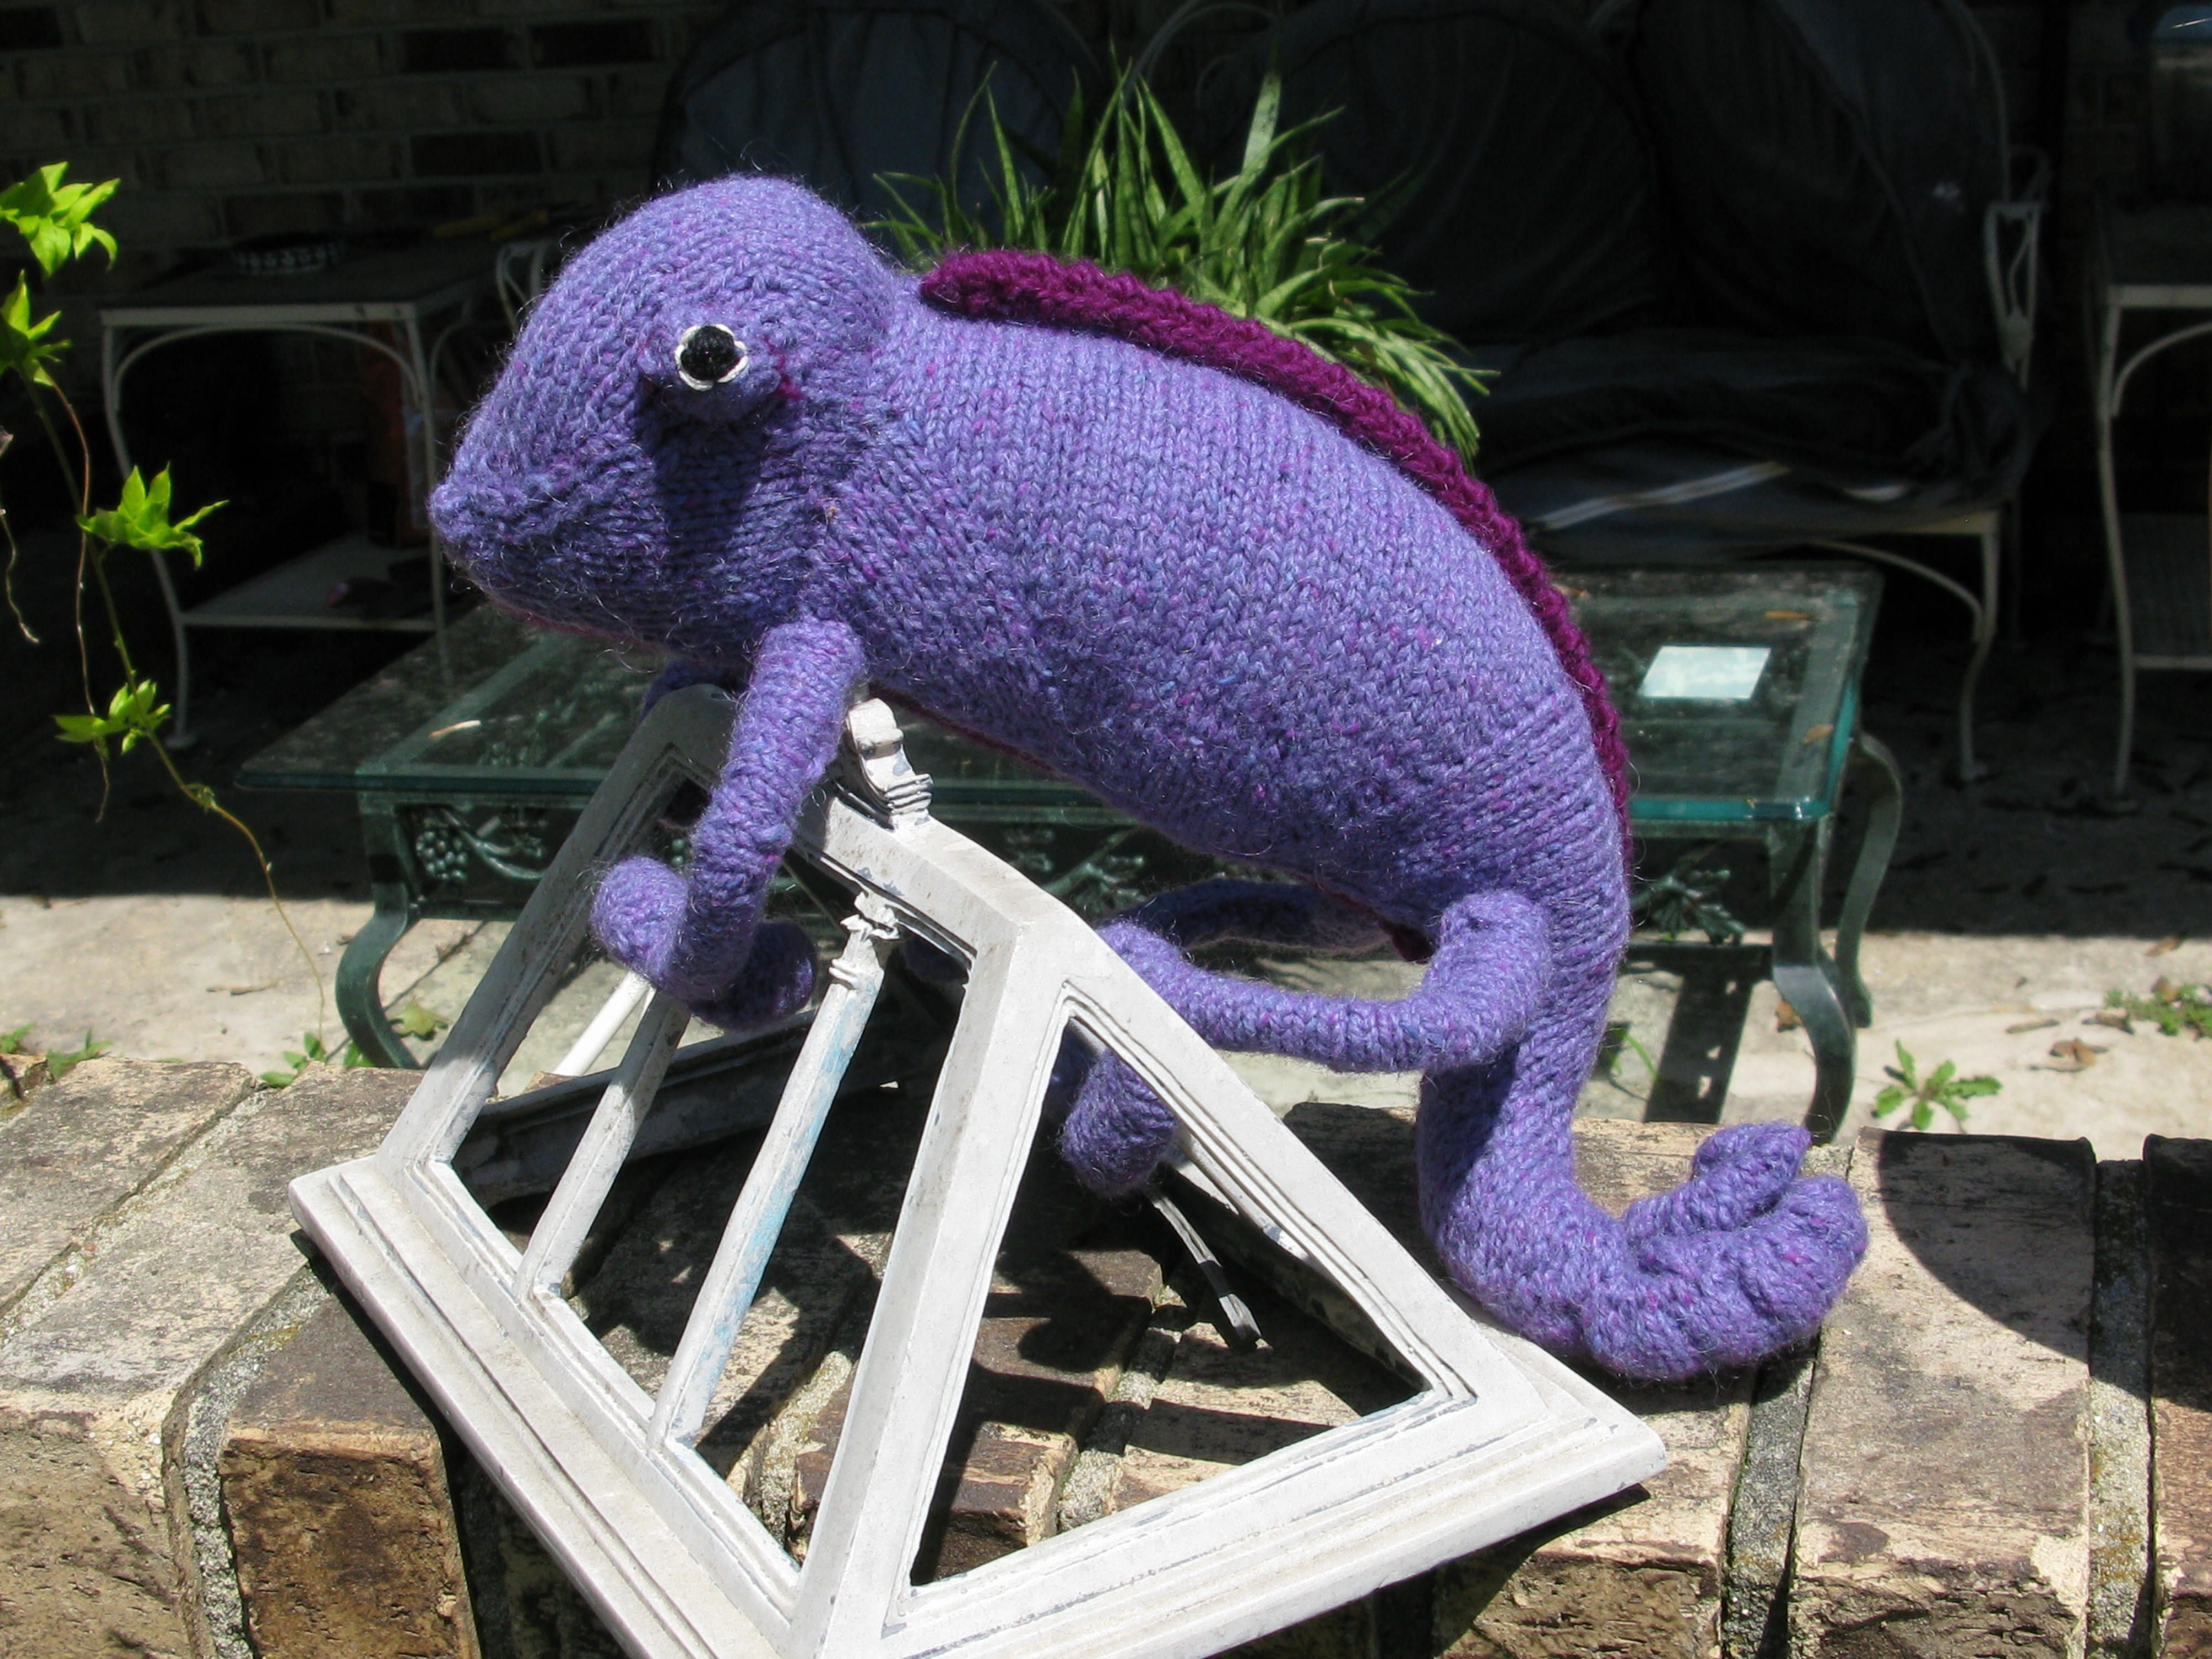 Chameleon pattern by hansi singh knitting and crochet chameleon pattern by hansi singh chameleon lizard chameleonsknitsravelrycrochetingcrochetganchilloknitwearchrochet bankloansurffo Images